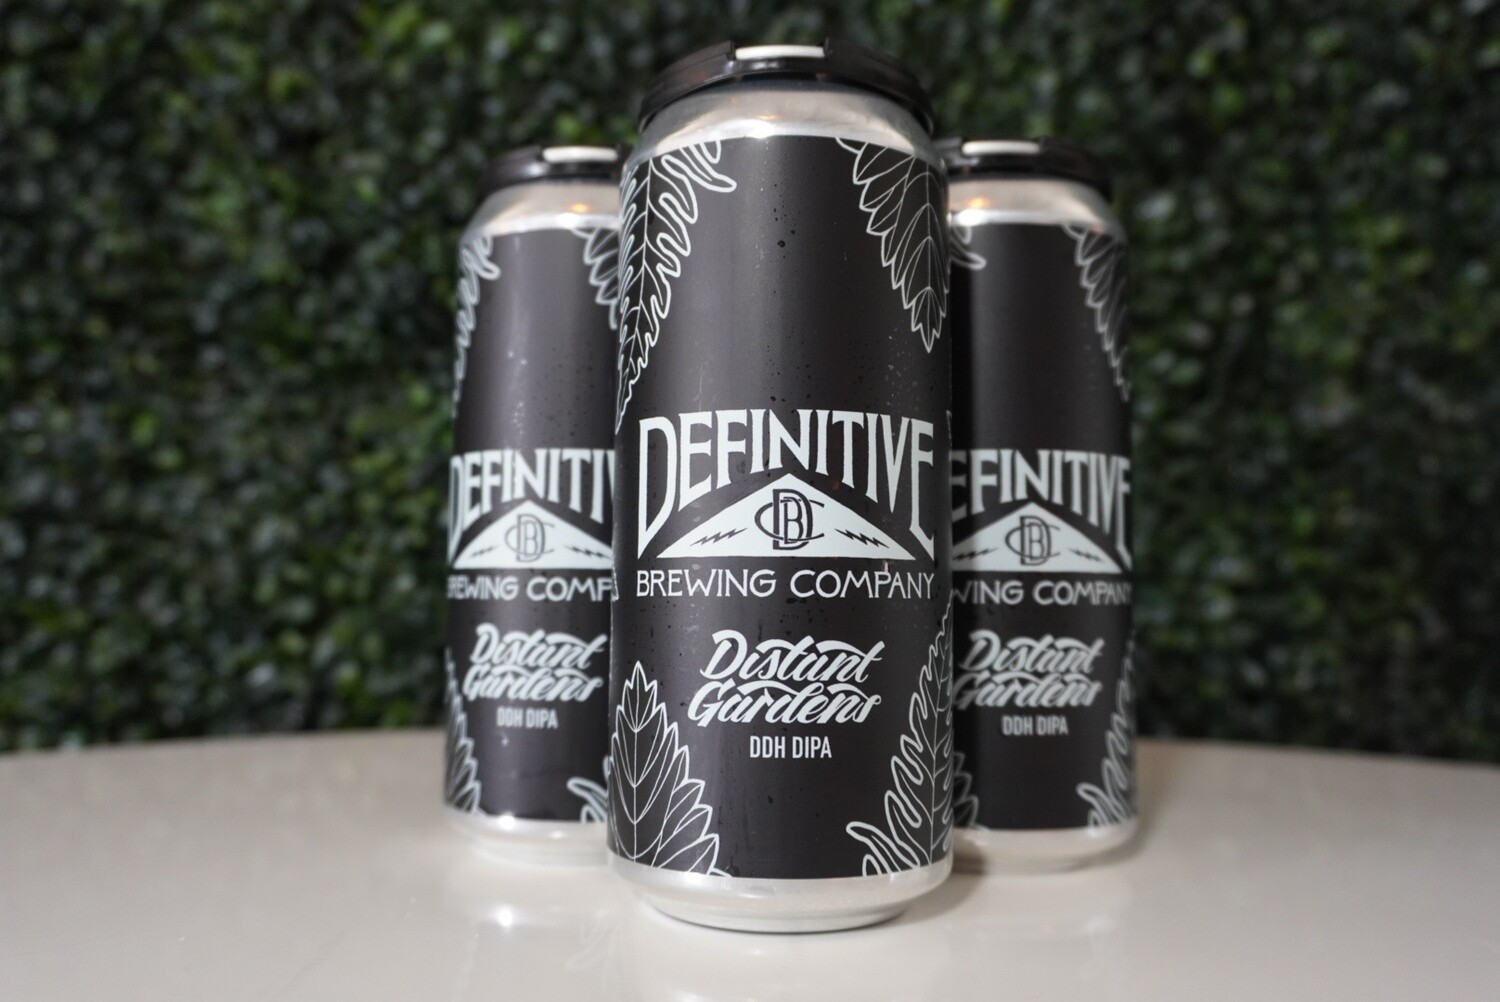 Definitive Brewing - Distant Gardens - DDH DIPA - 8% ABV - 16oz Can